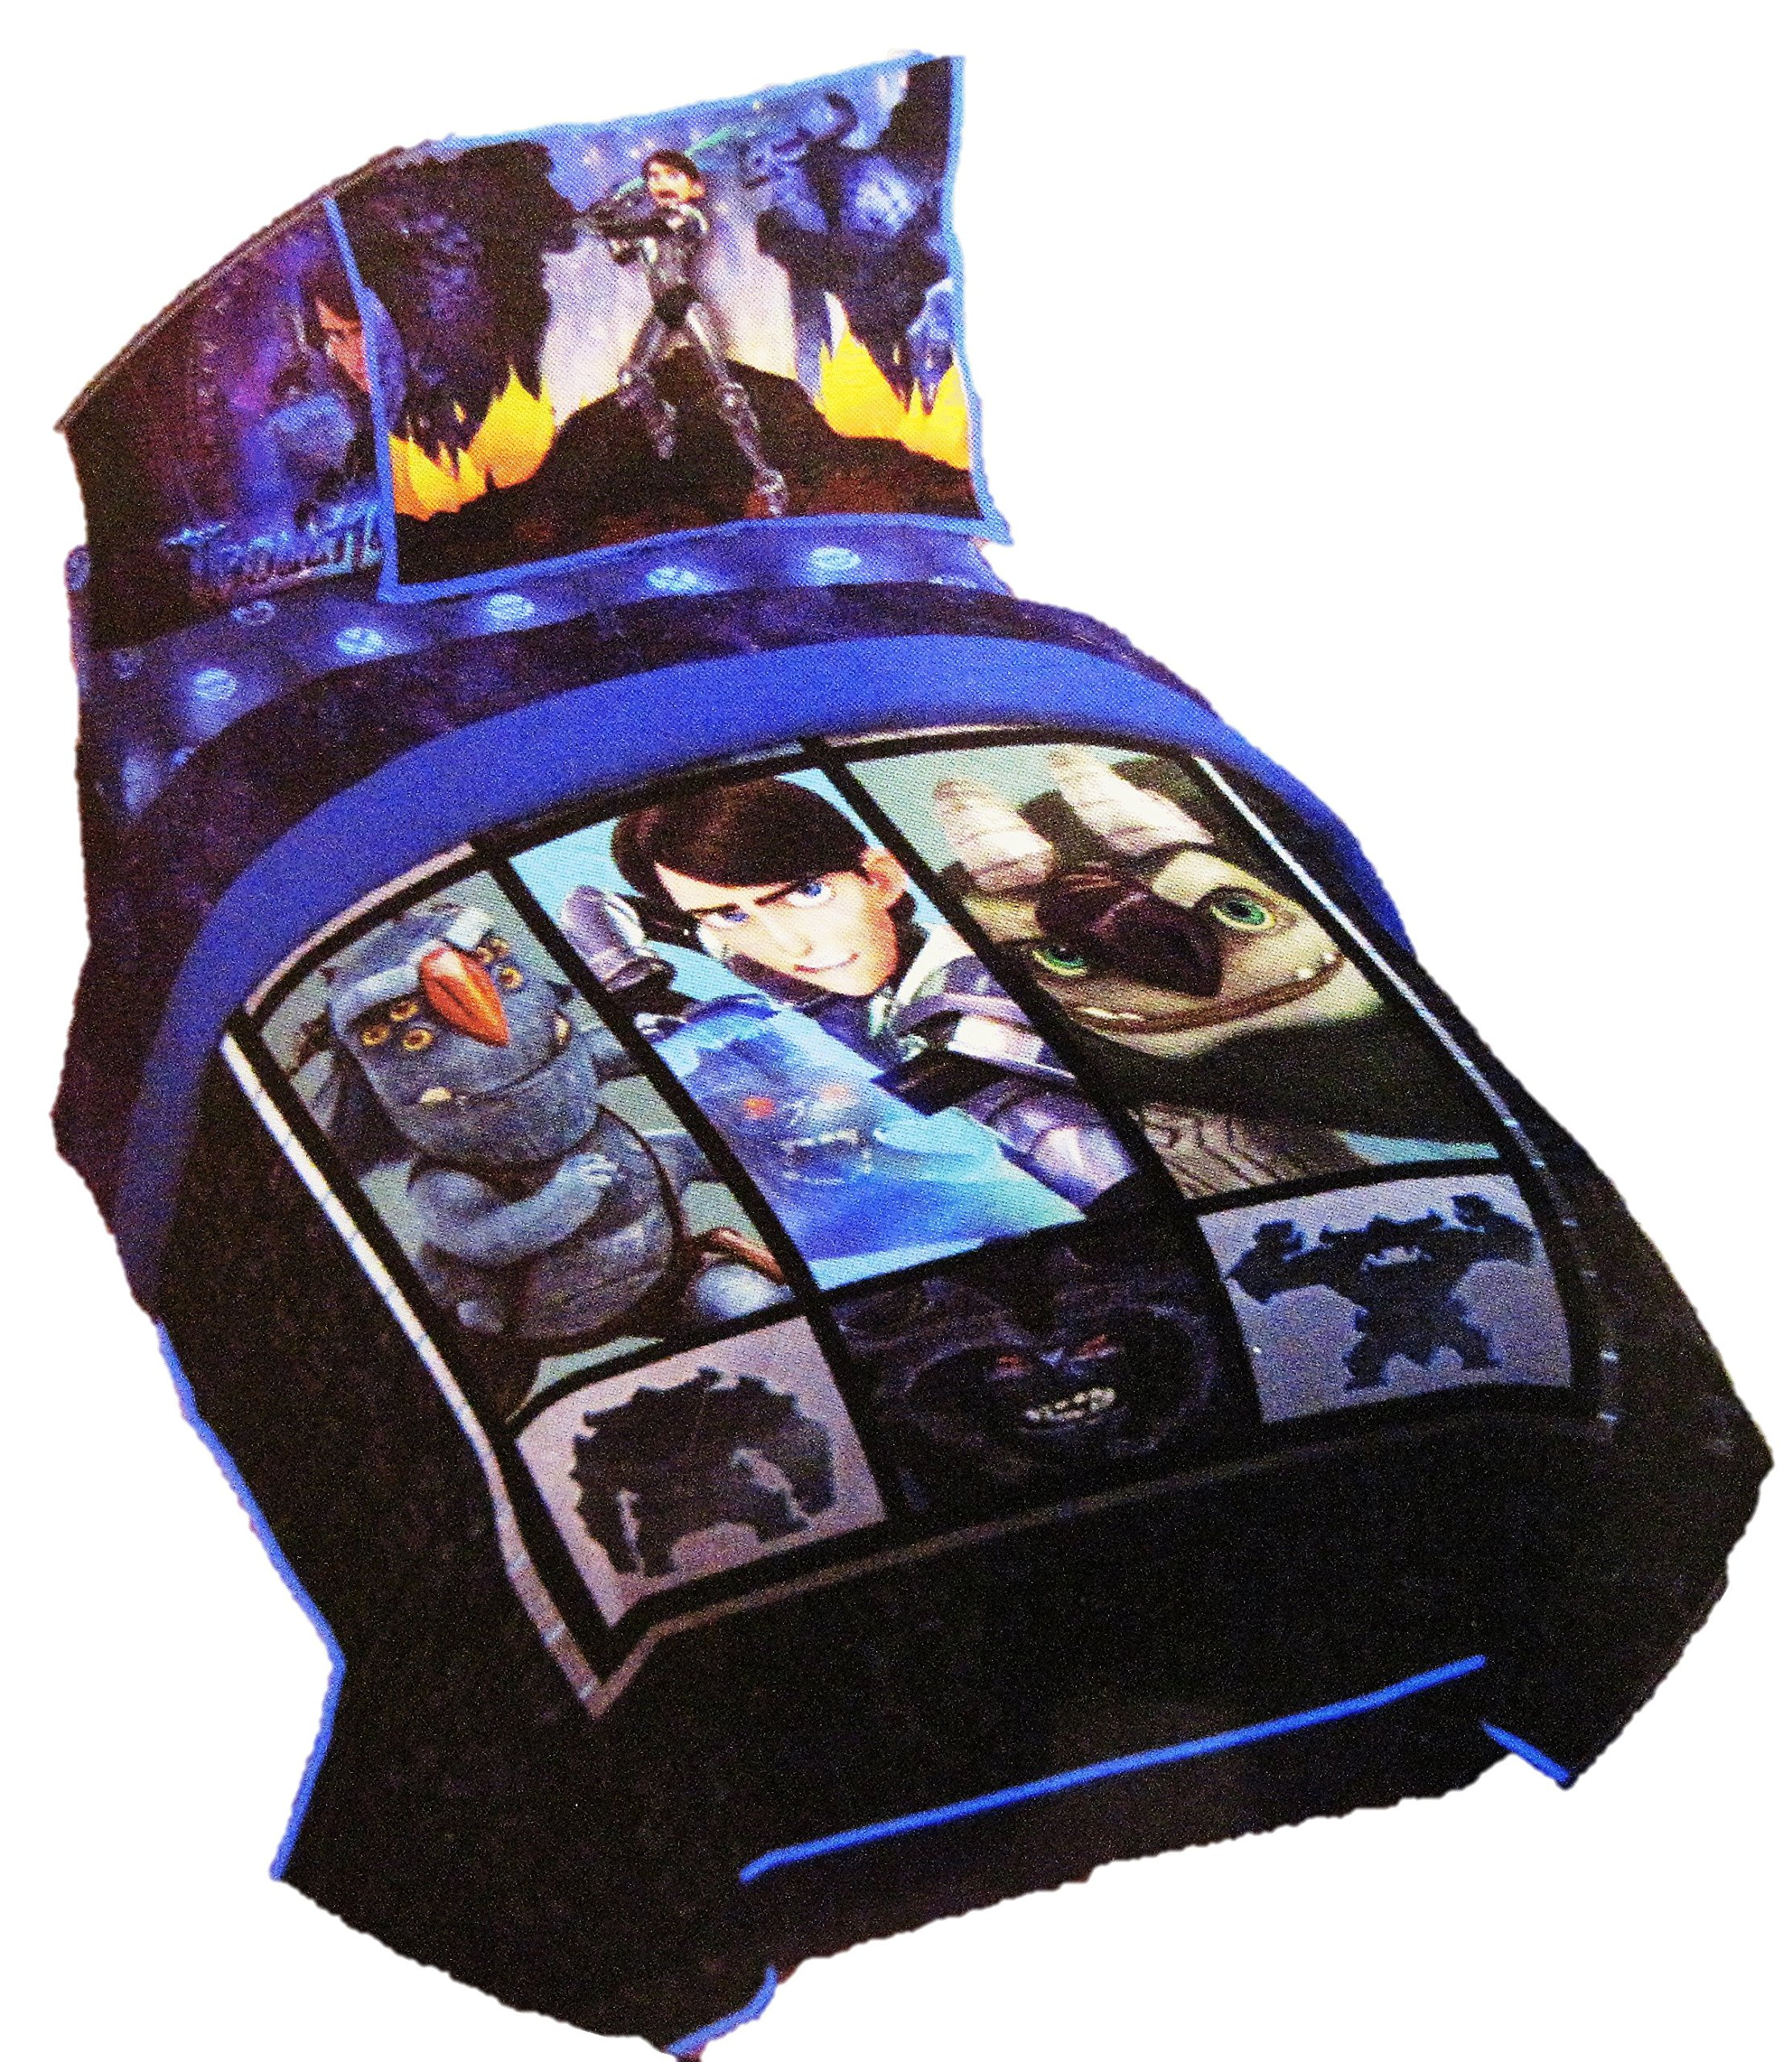 Dreamworks Trollhunters Tales of Arcadia Twin/Full Quilt and Sham and 3 Piece Sheet Set